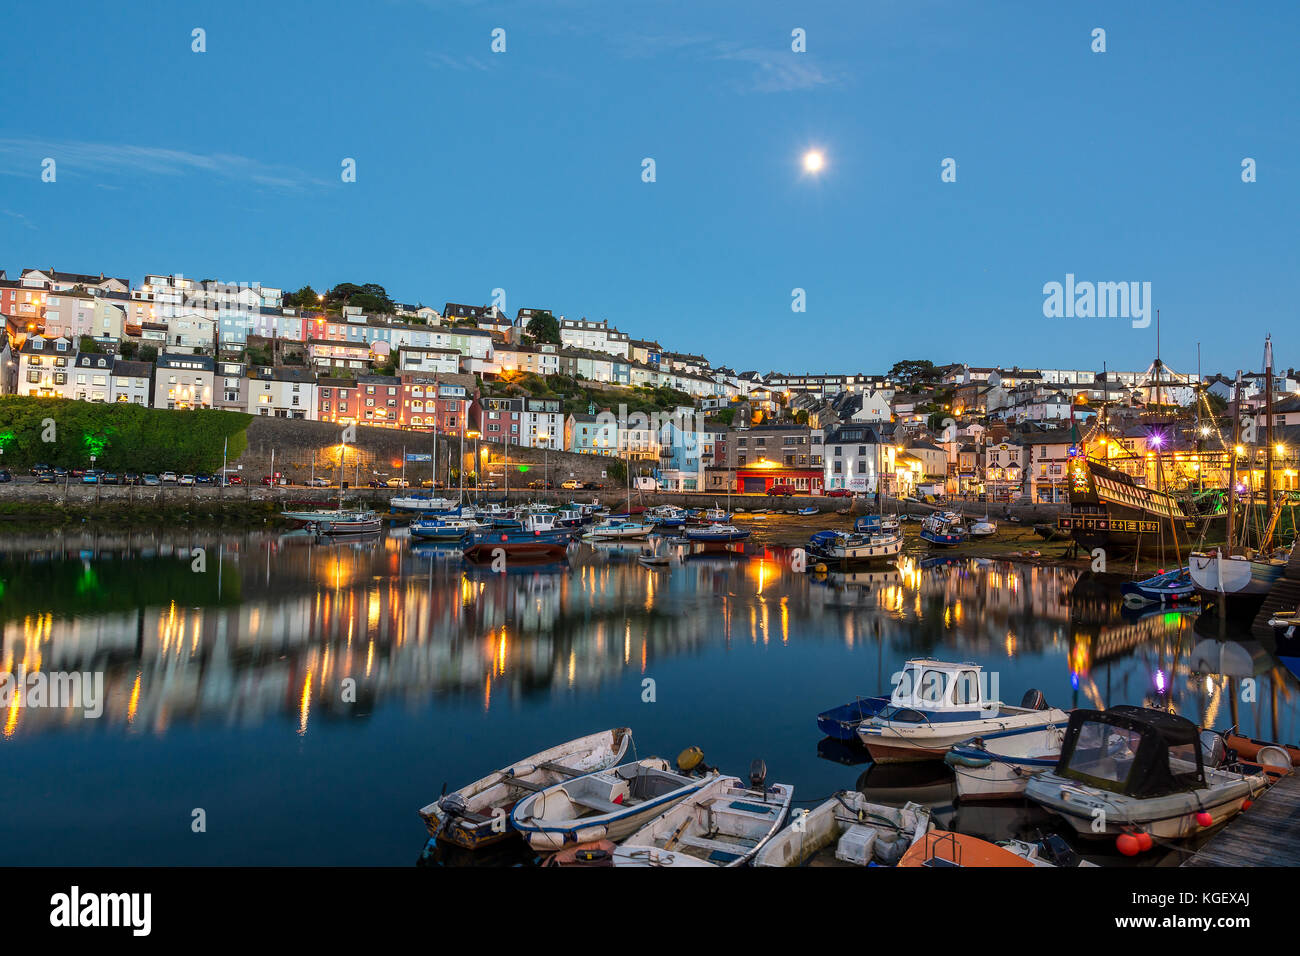 Brixham Harbour By Moonlight. - Stock Image